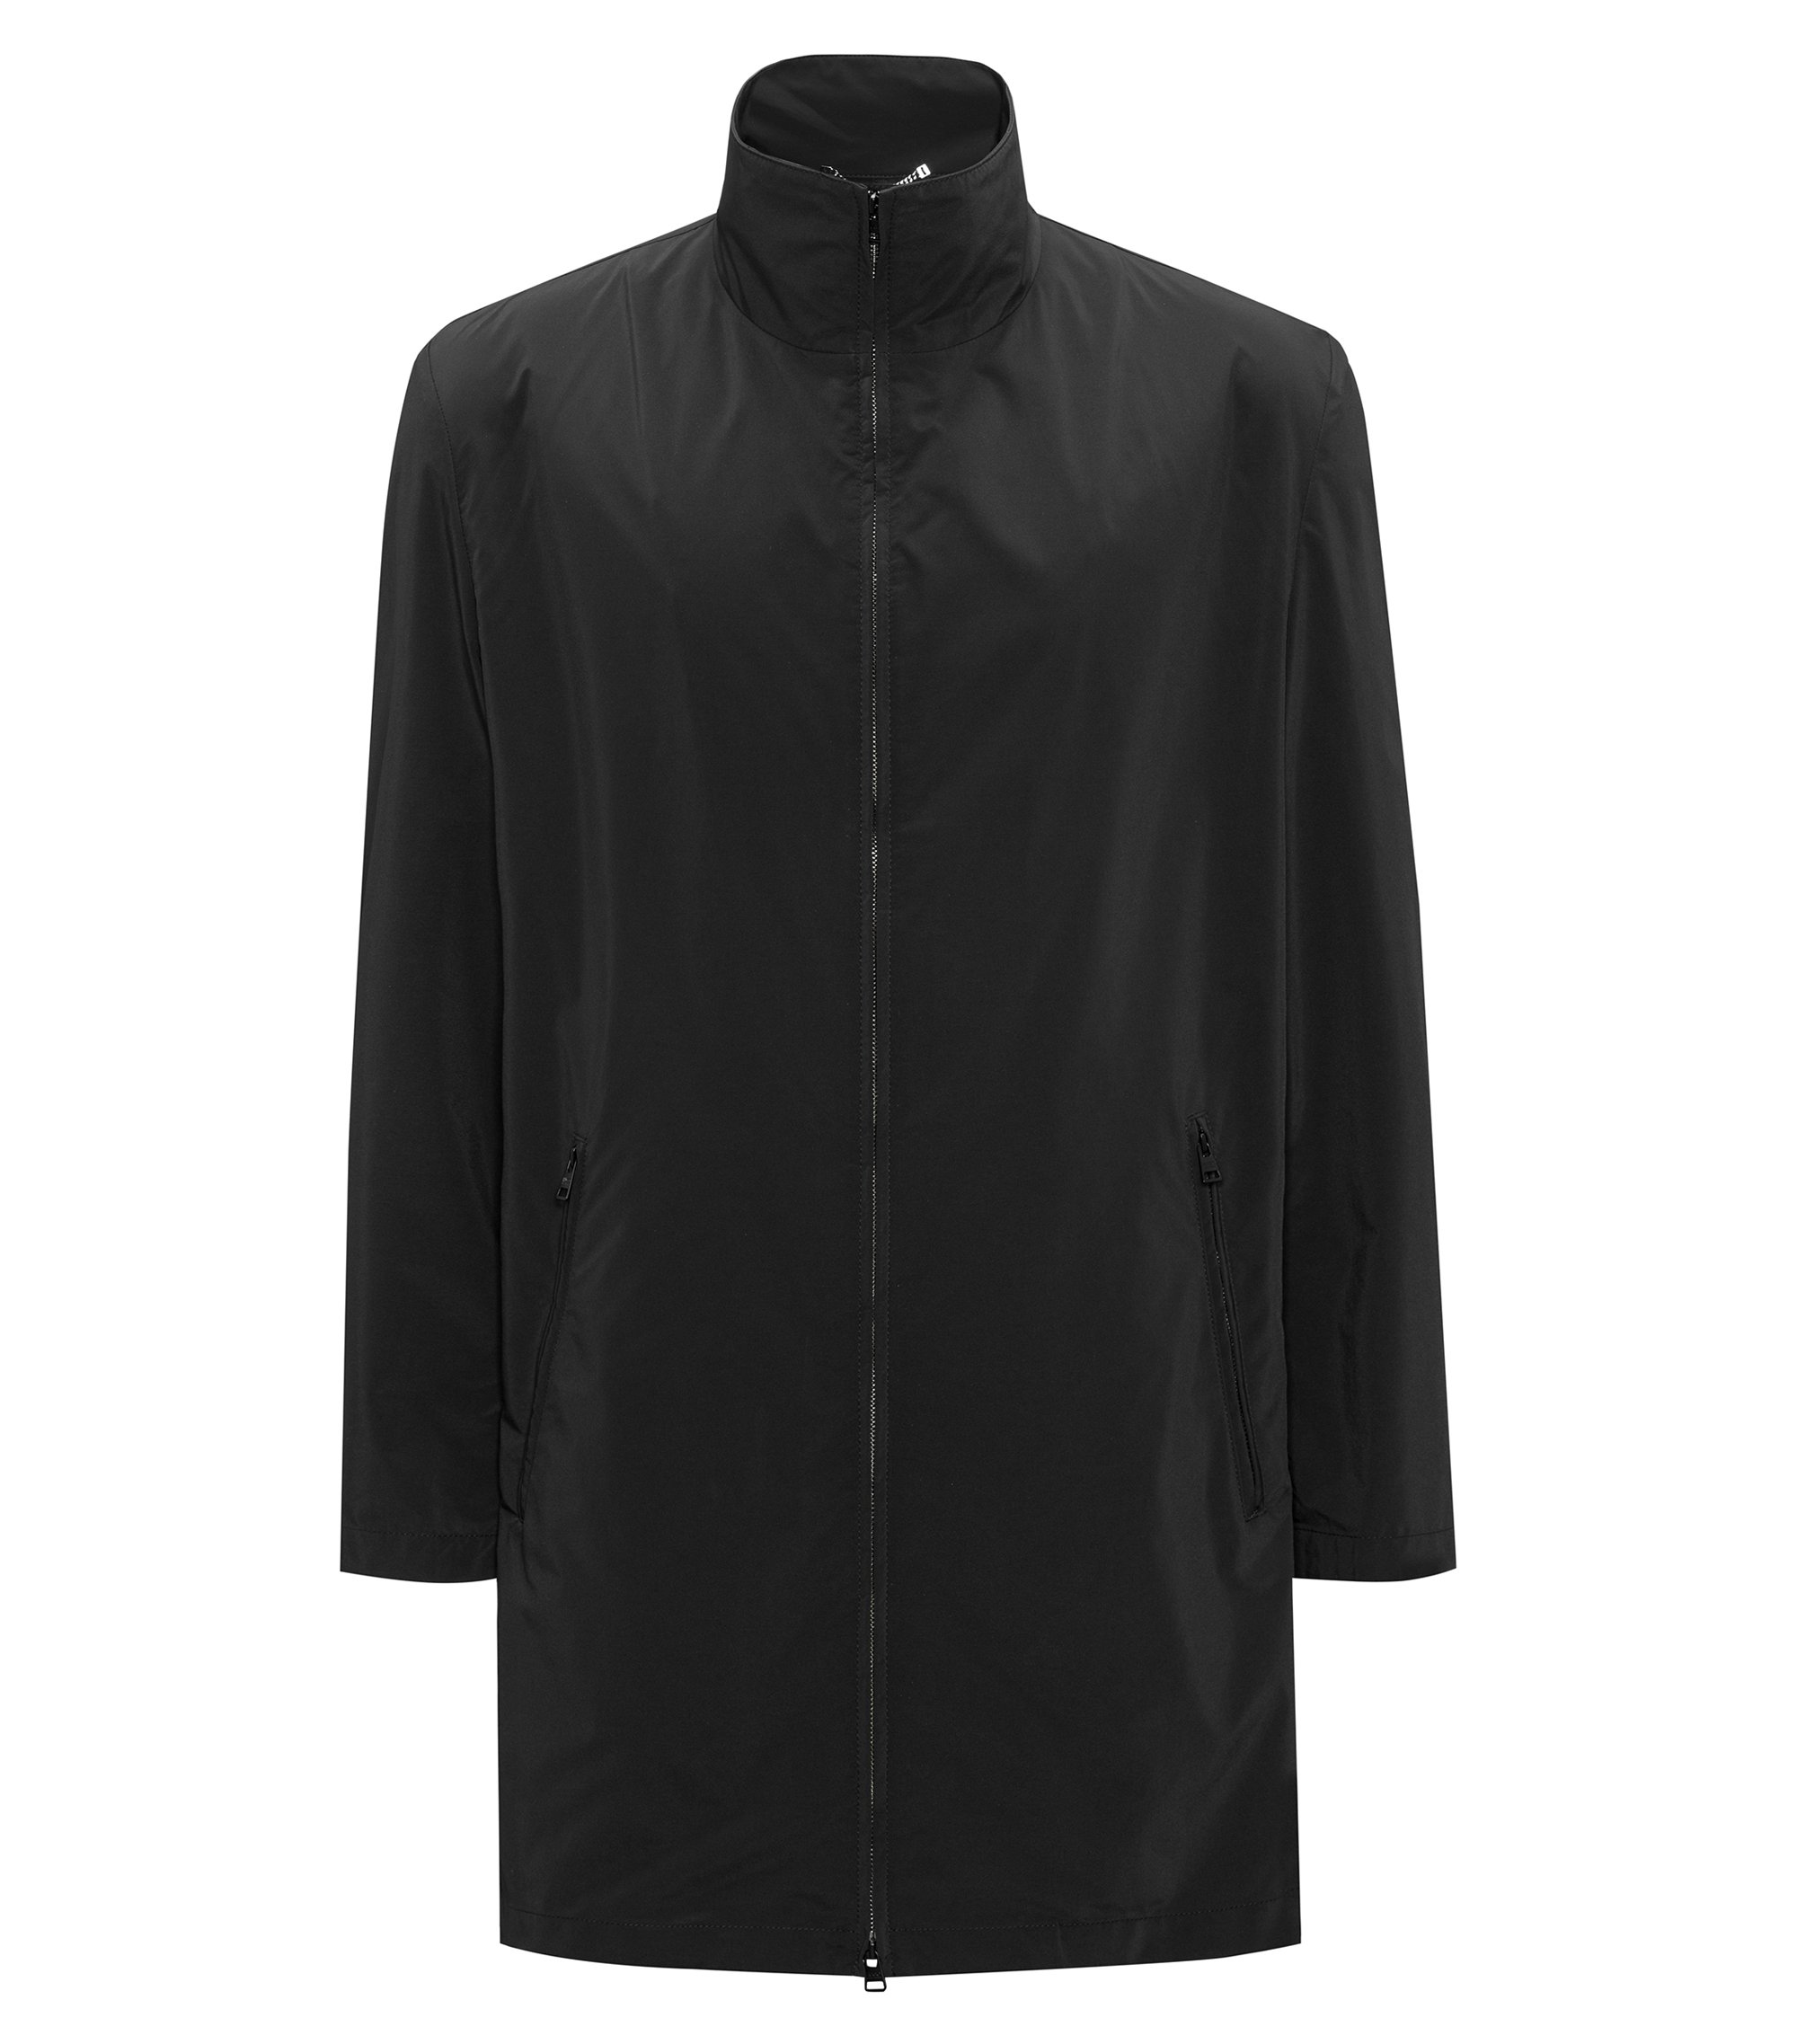 Cappotto slim fit con zip integrale e colletto rialzato, Nero